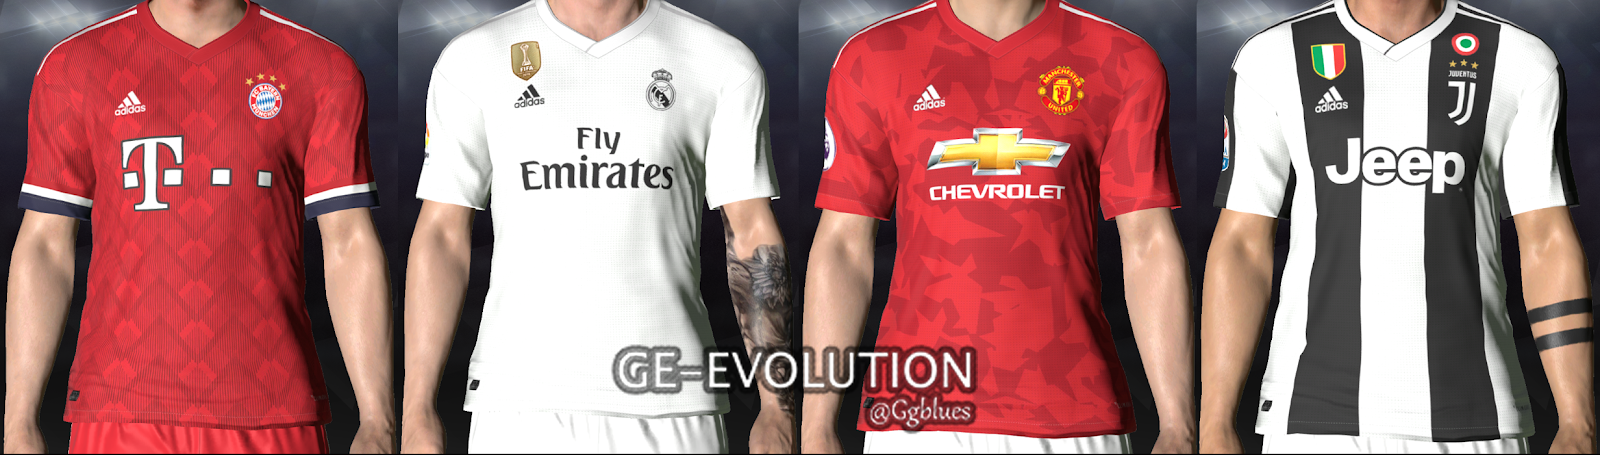 Adidas Home Kits 2018/19 (Leaked/Concept) for PES 2017